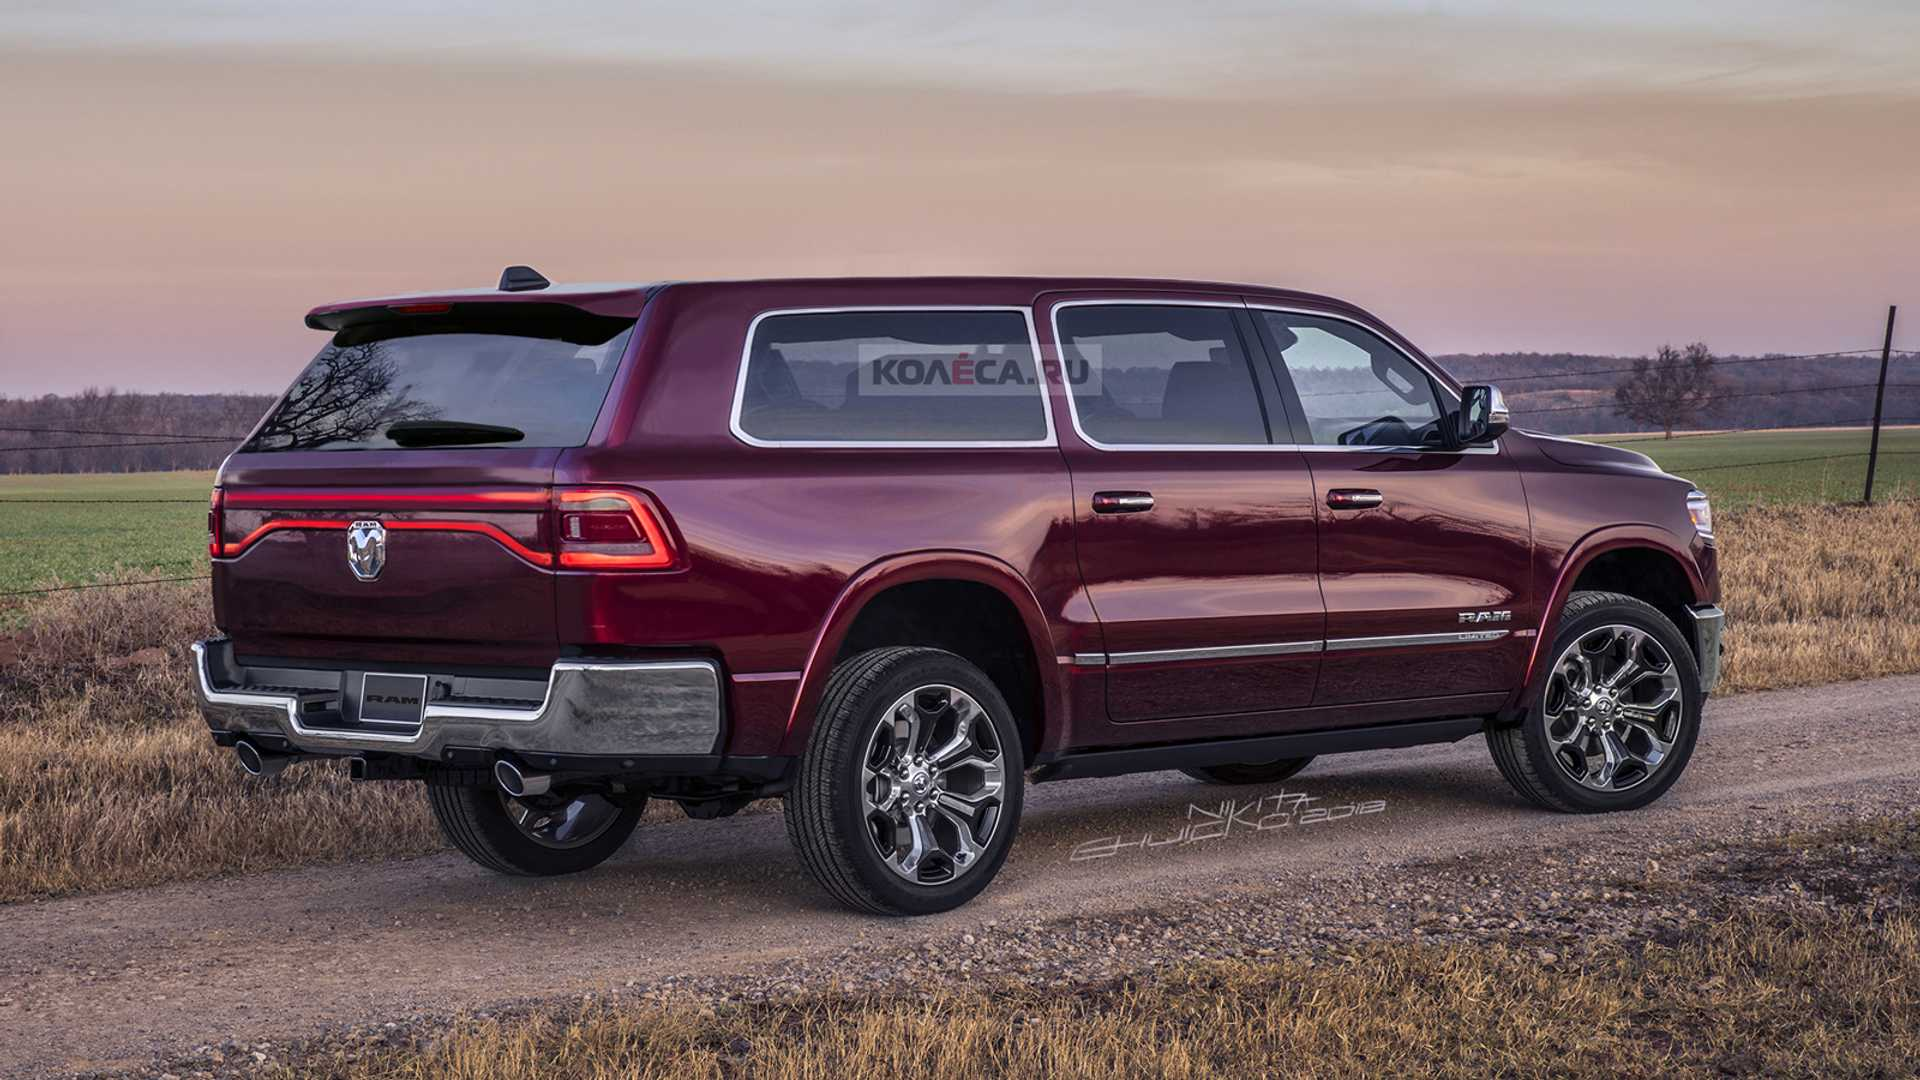 Ram Suv Fan Renderings Reveal A Handsome Full Size People Mover